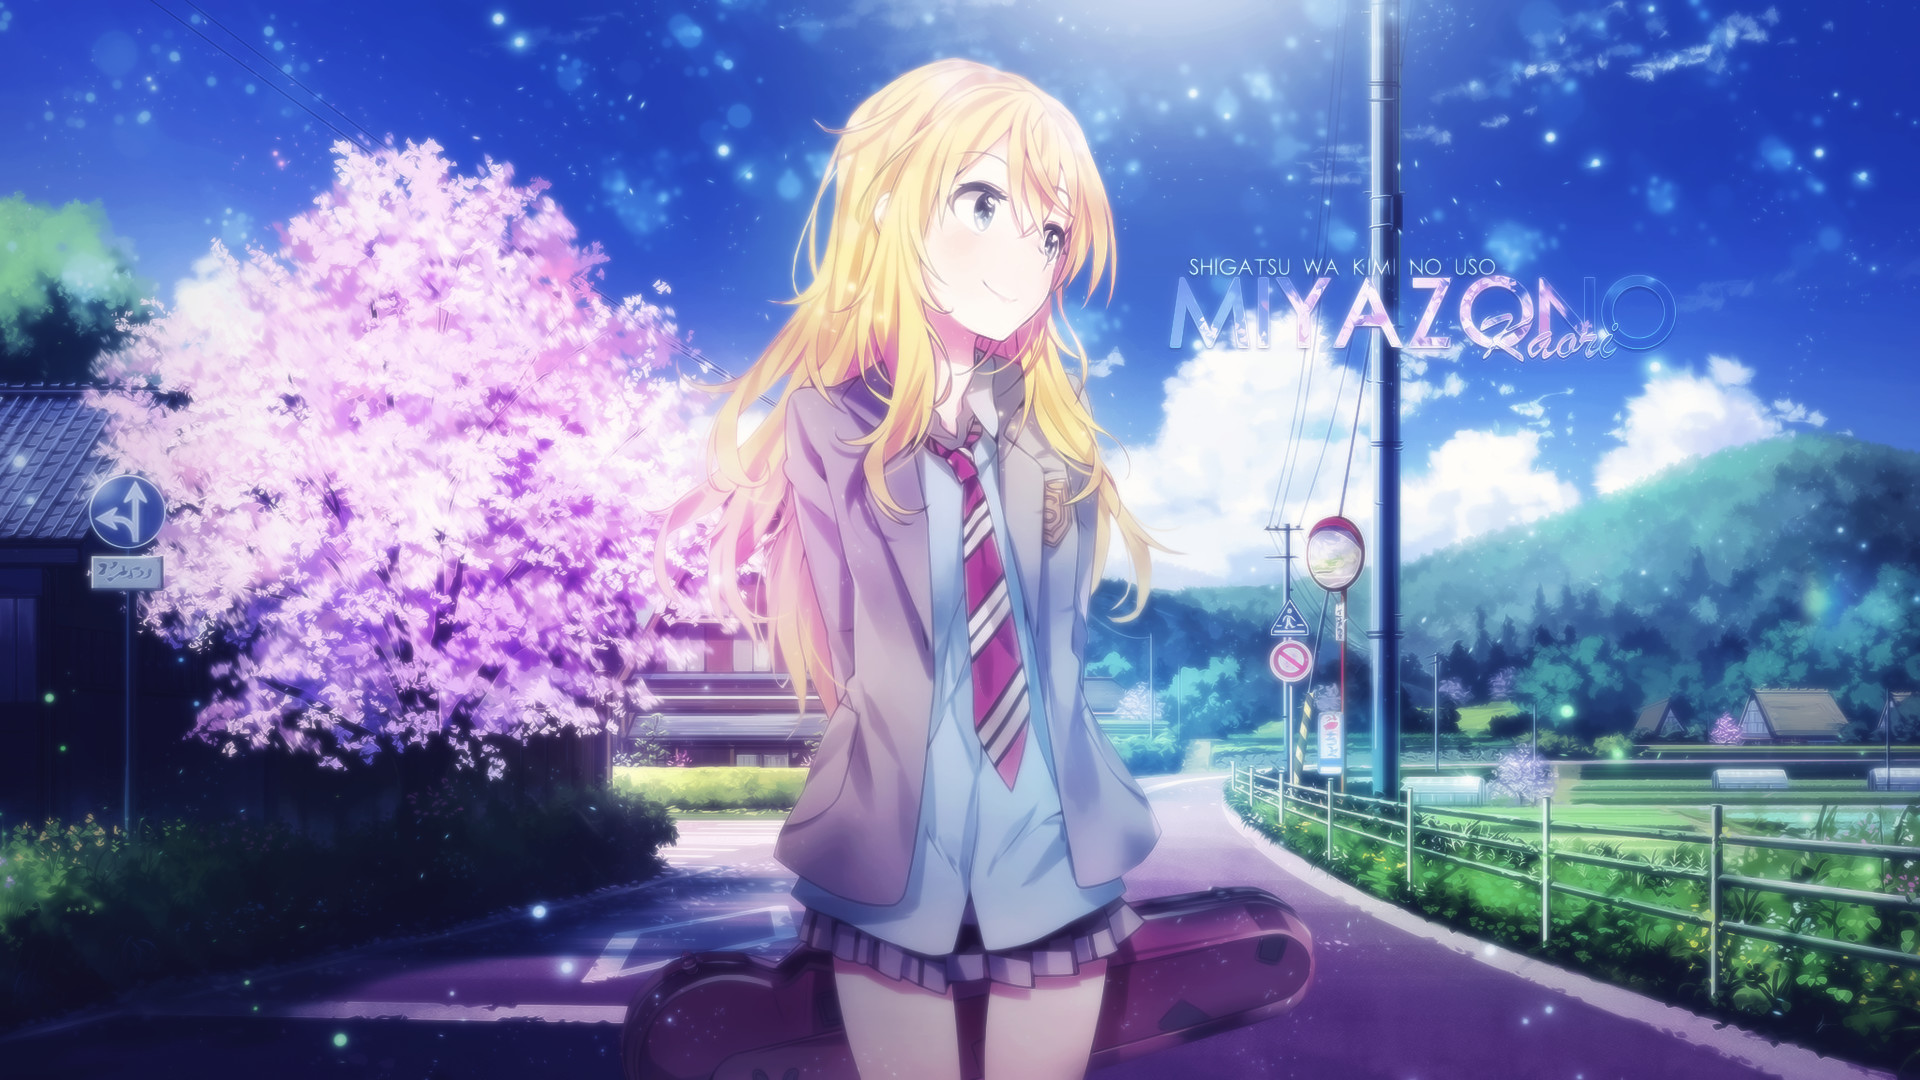 Best desktop background hd anime – Anime Wallpapers Hd Pictures Live Hd  Wallpaper Hq Pictures for Best desktop background hd anime | 1920 X 1080 …